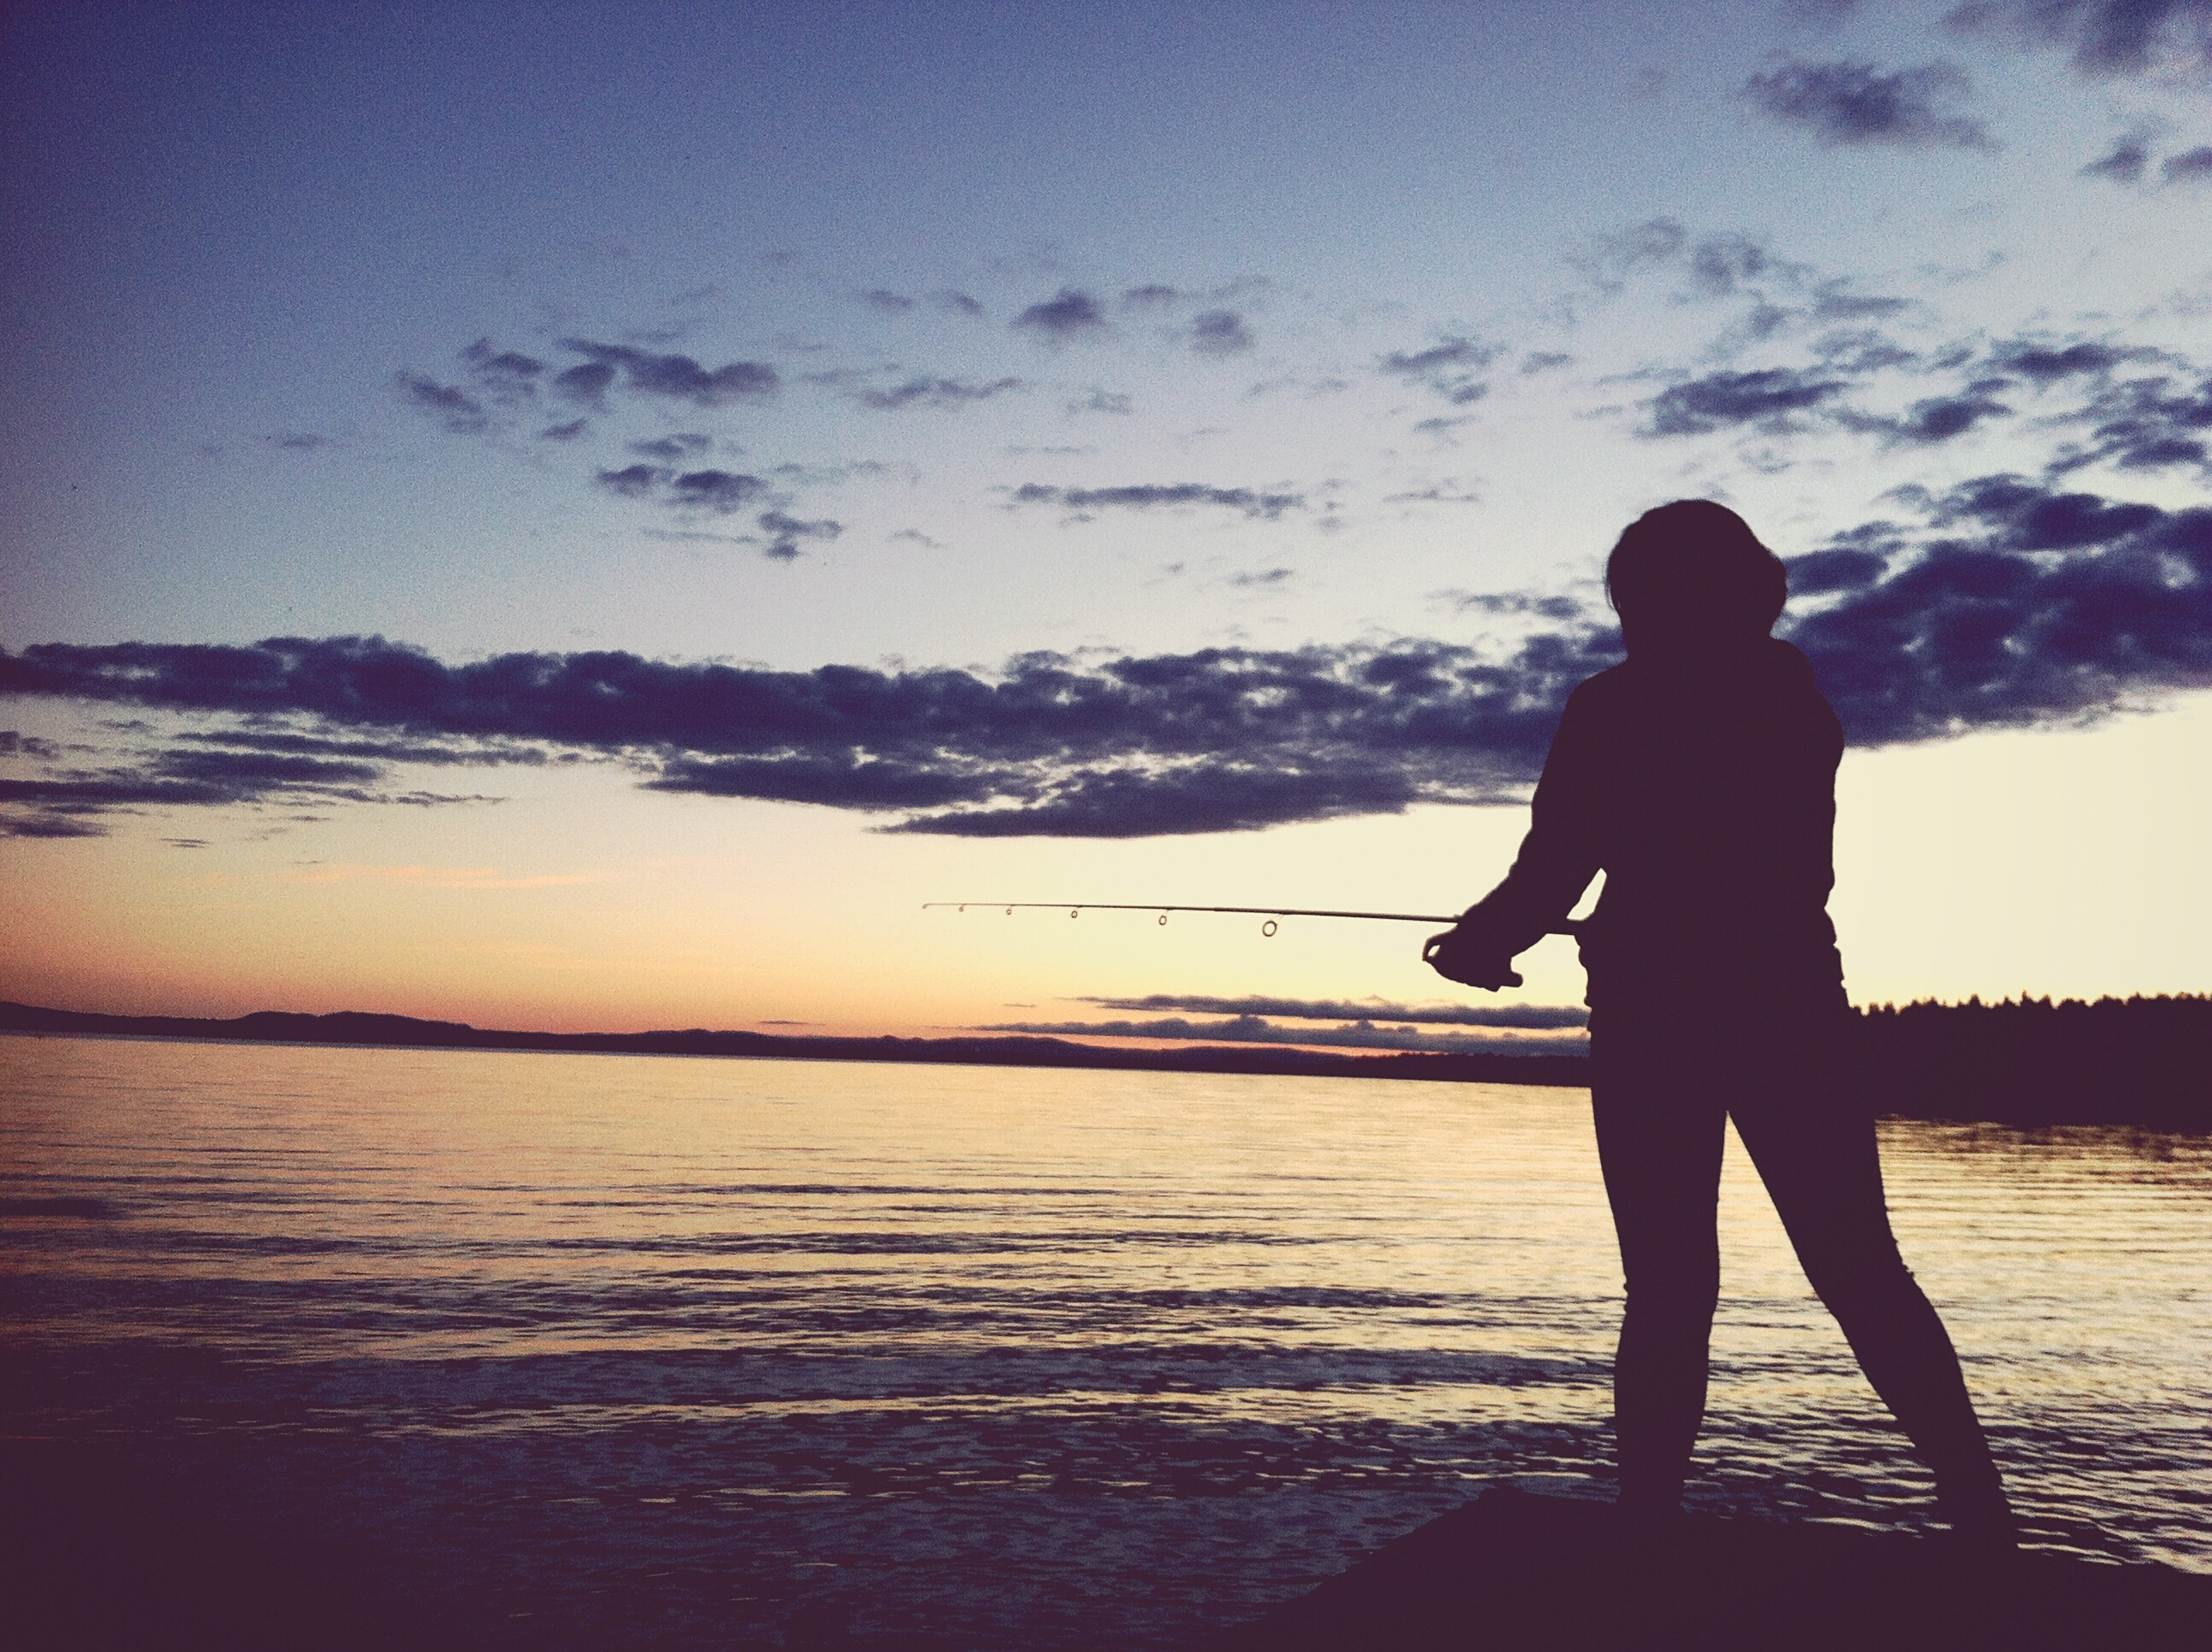 silhouette of person holding fishing rod taken at sunset